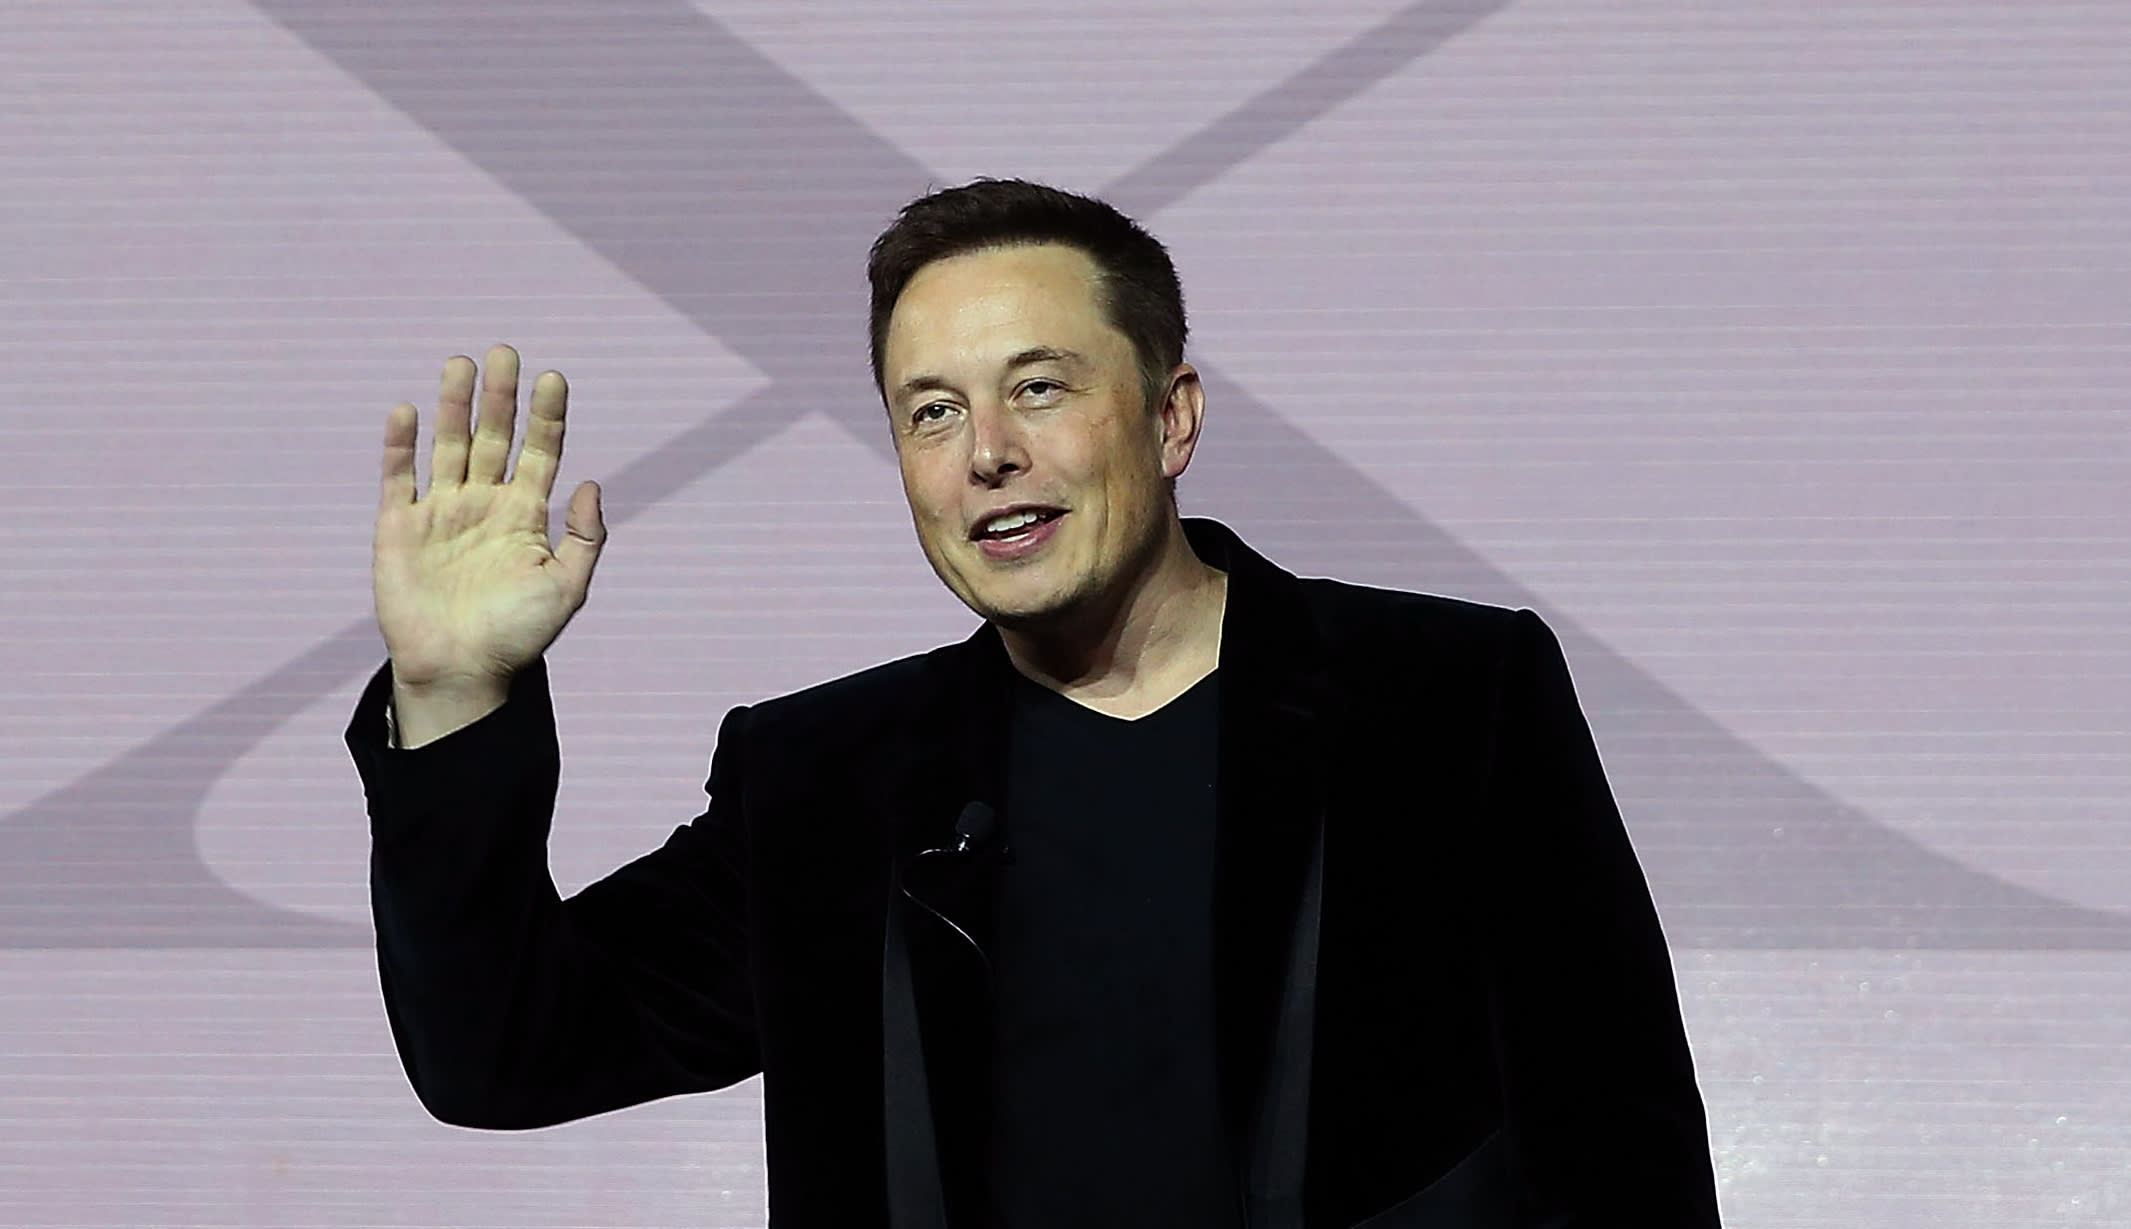 Elon Musk tried to pitch the head of the Yellow Pages before the internet boom: 'He threw the book at me'